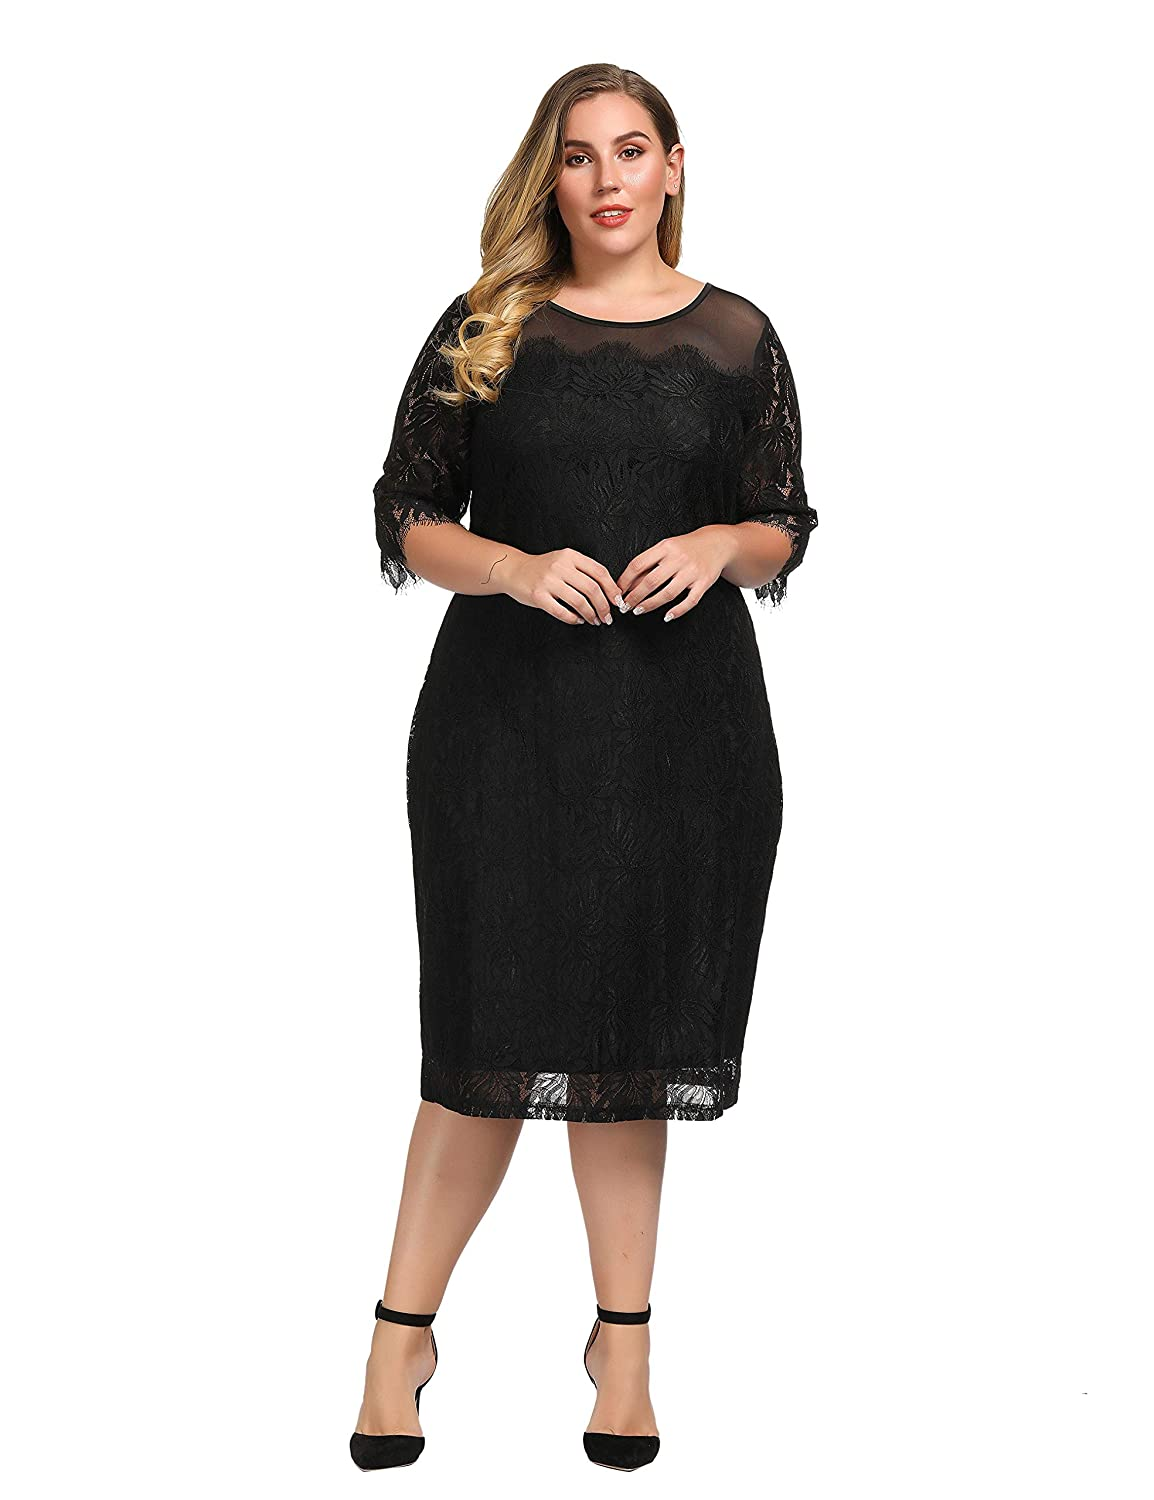 f6fd63155d3 Chicwe Women s Plus Size Guipure Applique Shift Dress with Mesh Top- Casual Party  Dress at Amazon Women s Clothing store